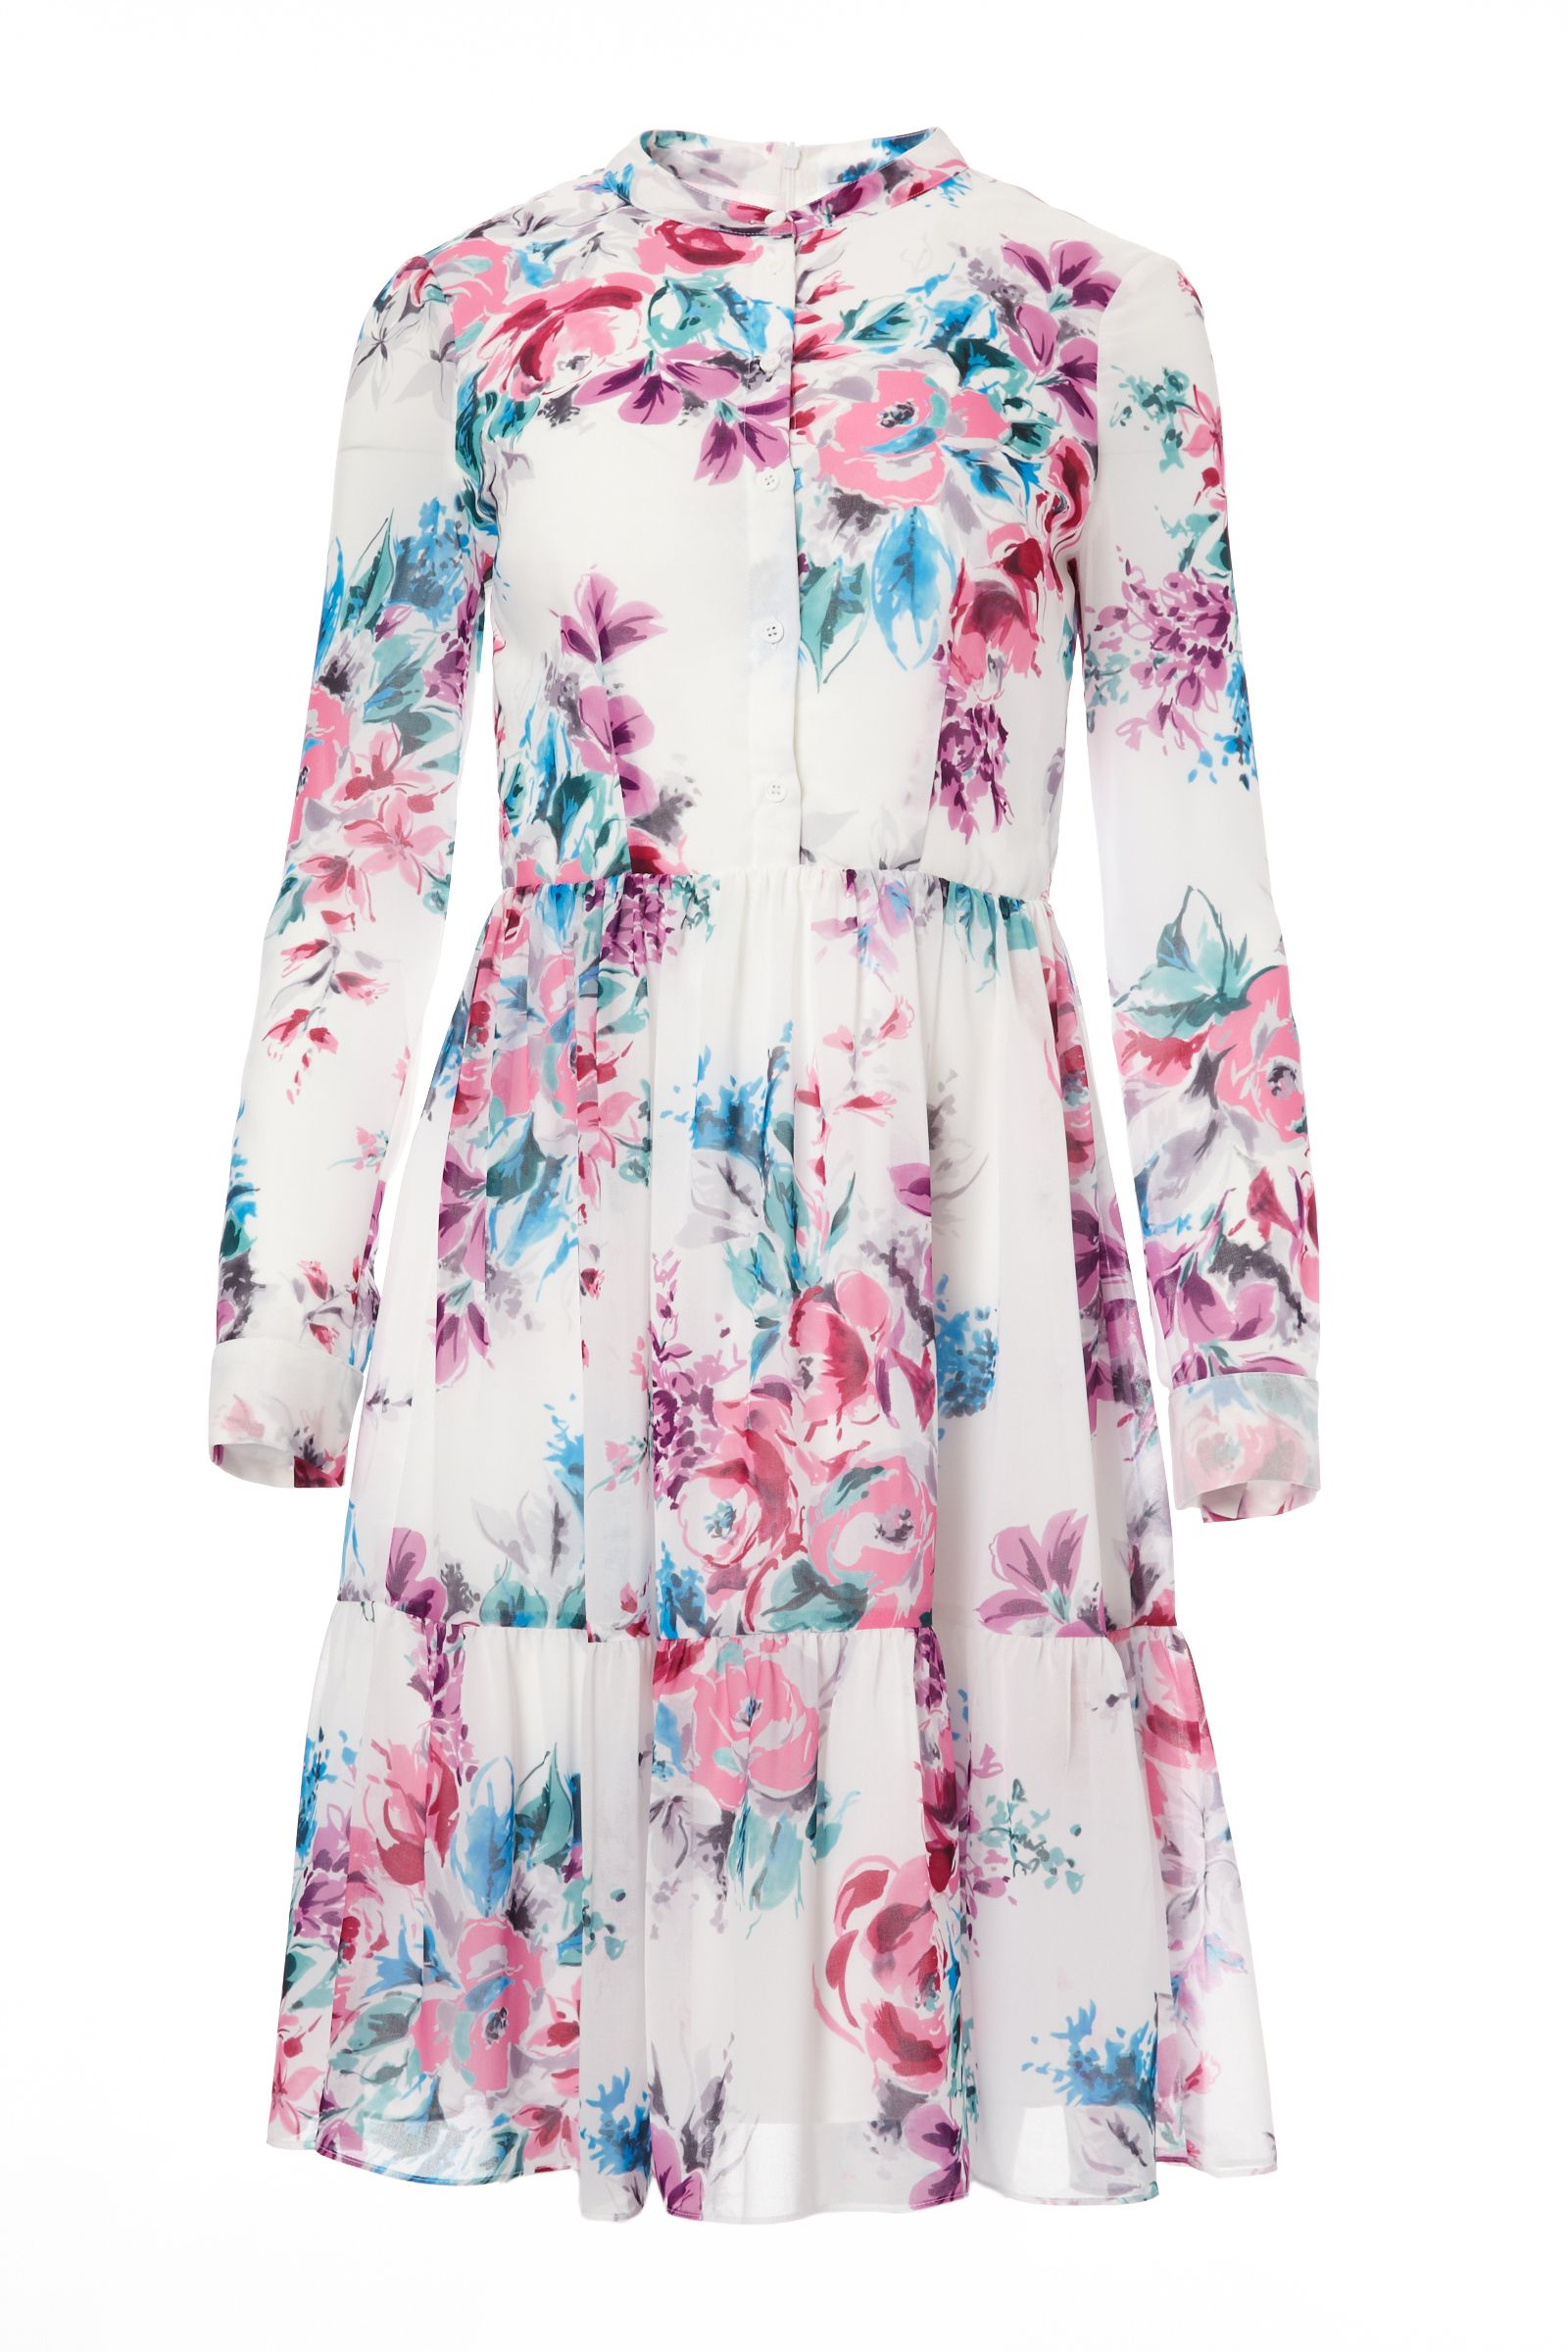 Carolina Cavour Retro Flowy Longsleeve Dress, Multi-Coloured